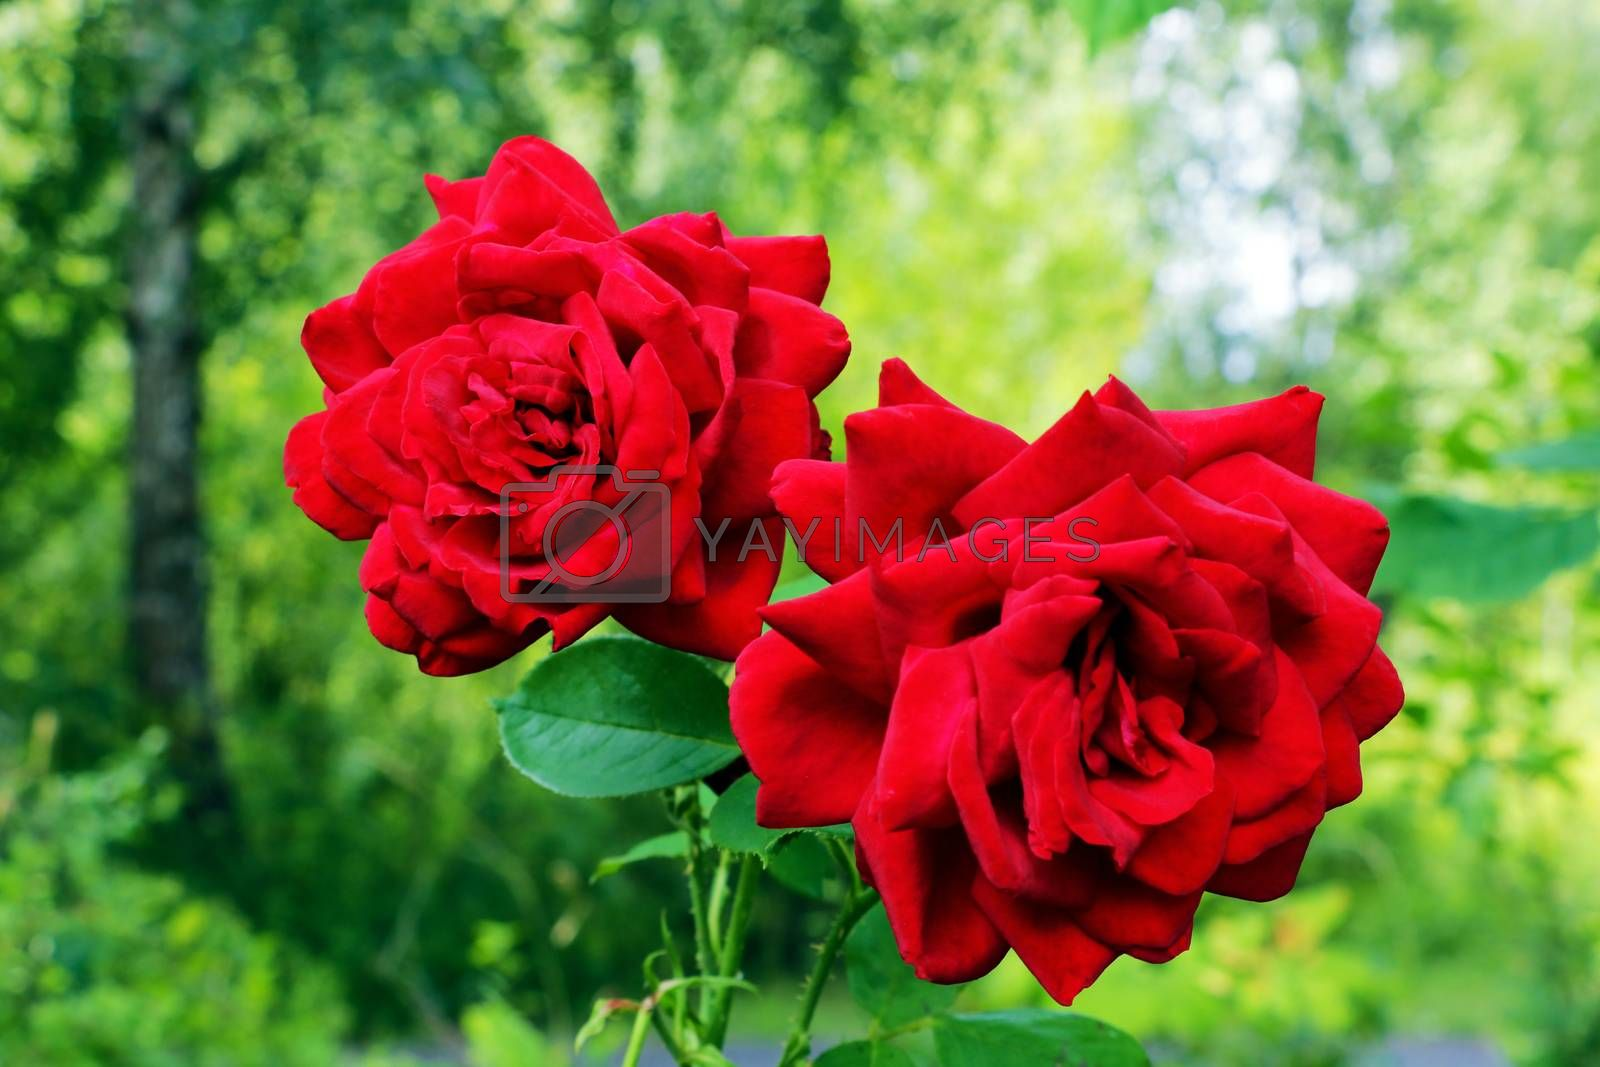 Red Roses on a bush in a garden. Nature